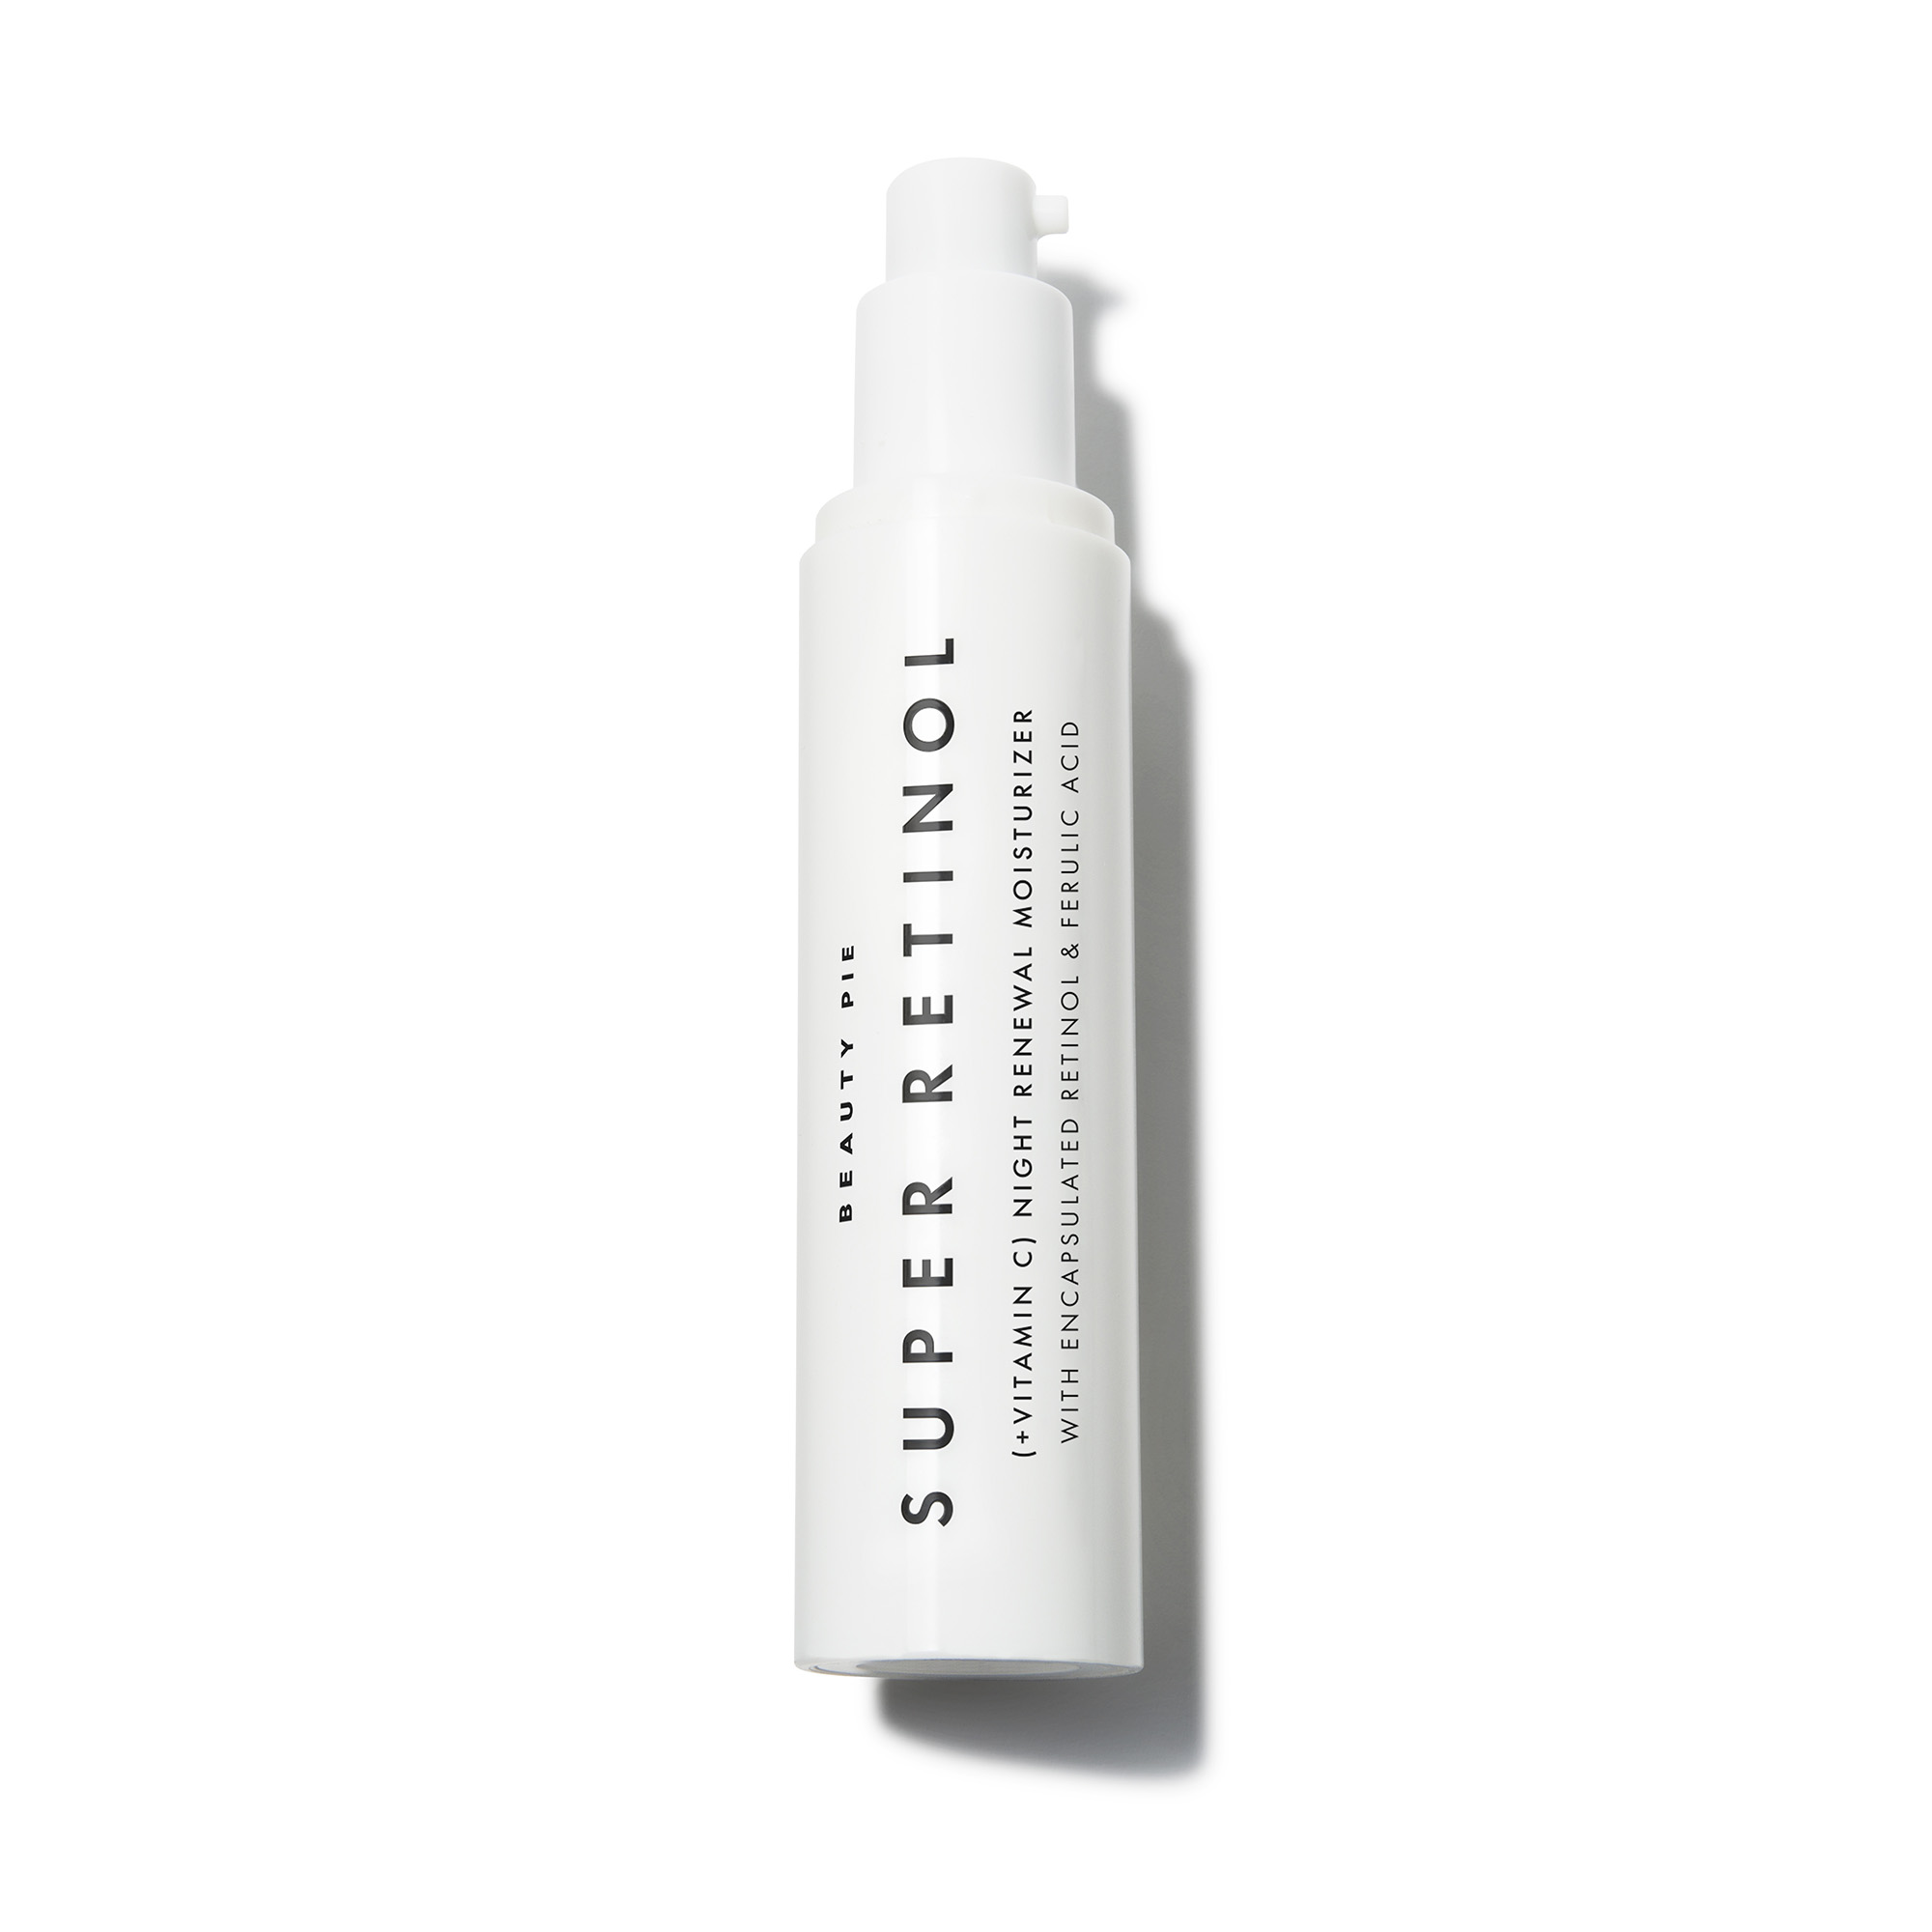 Image for Super Retinol (+ Vitamin C) Night Renewal Moisturizer from BeautyPie US